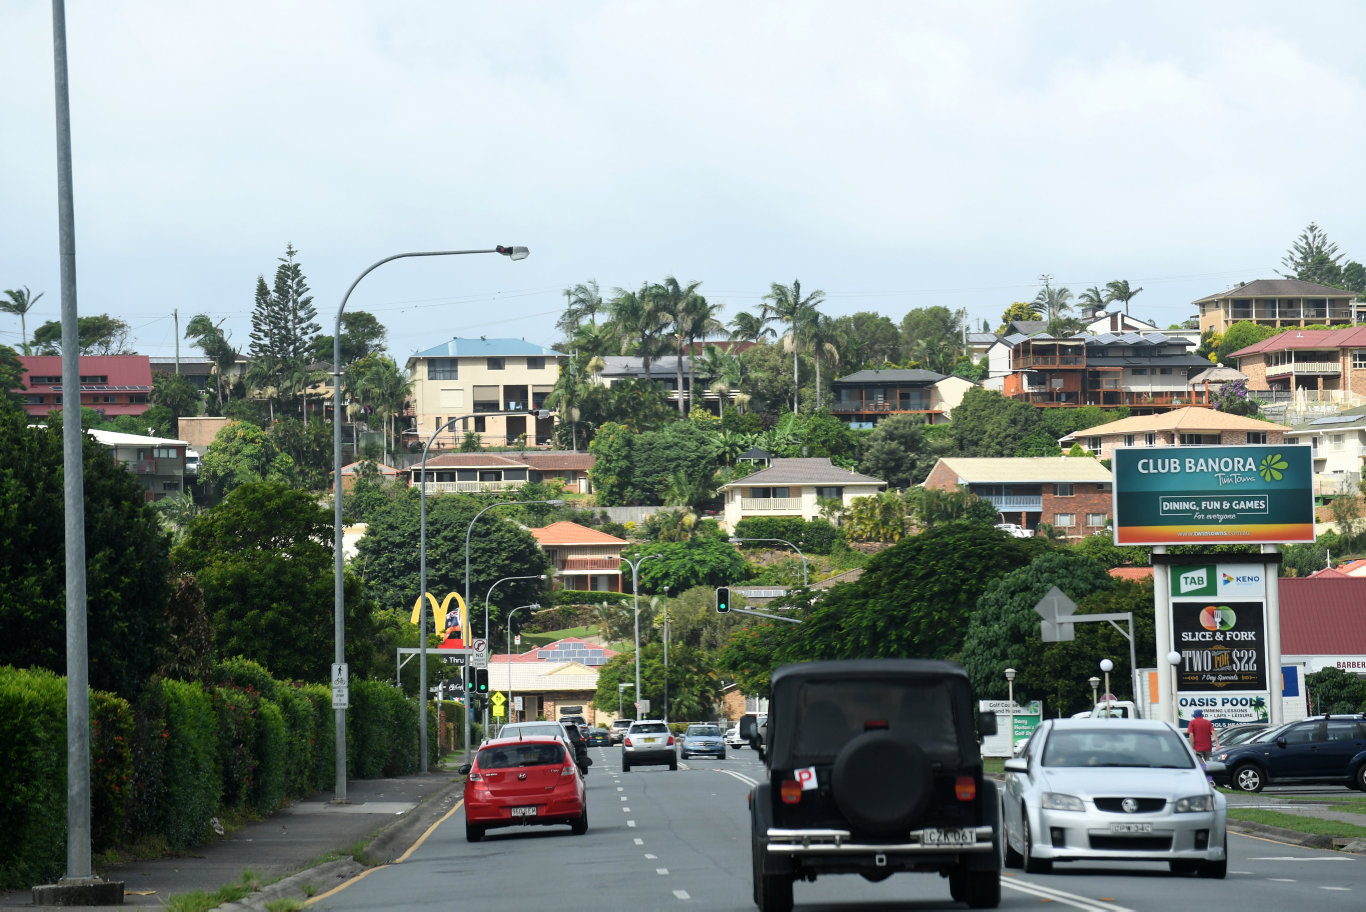 General view of housing in the suburb of Banora Point.